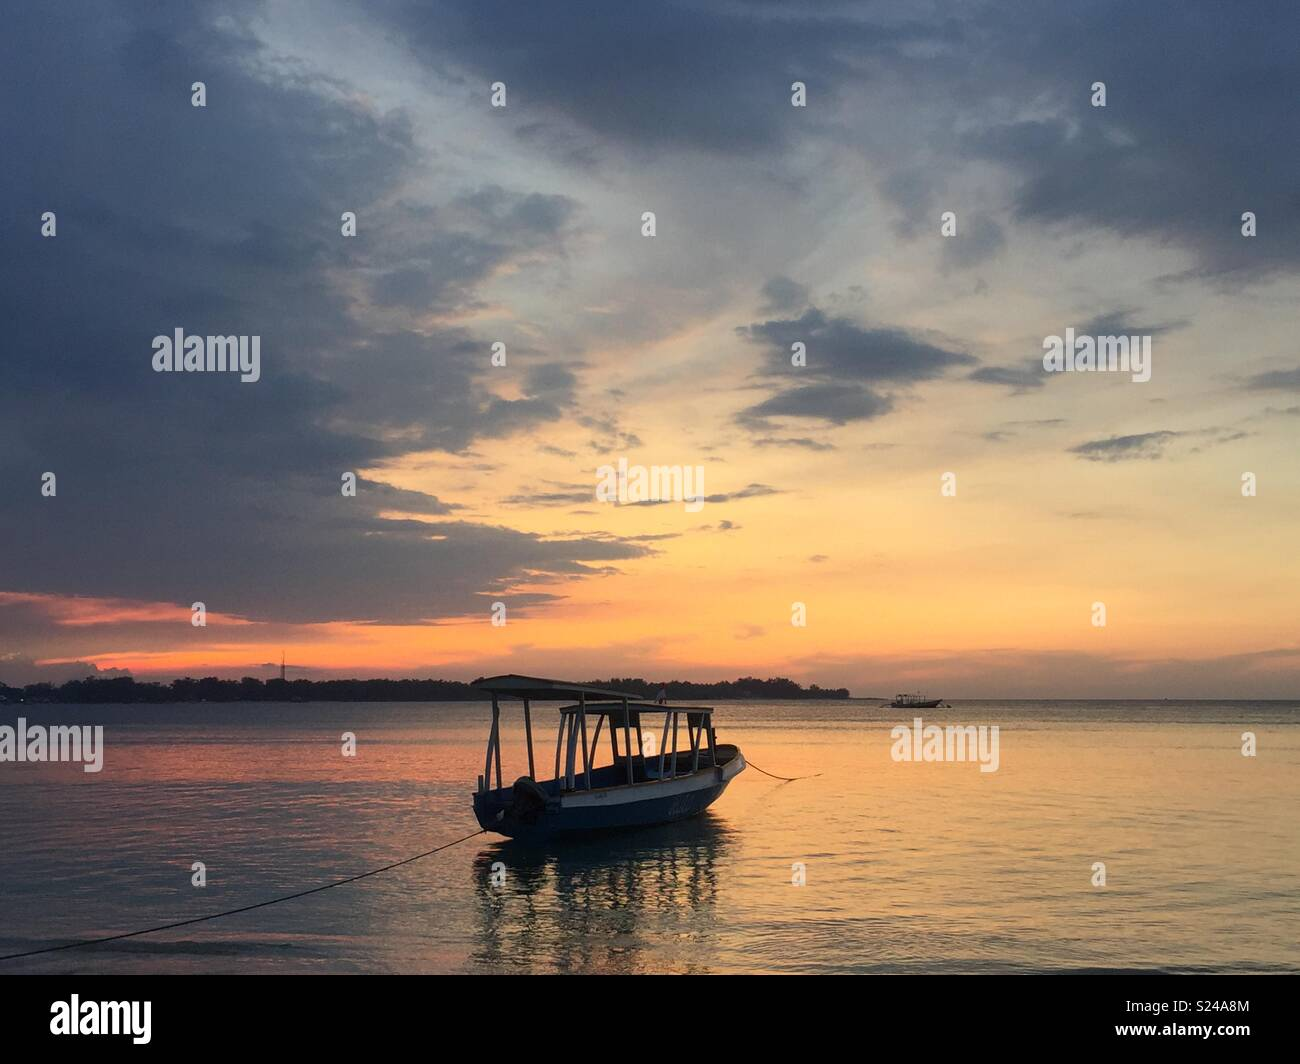 Sunset from Gili Air - Stock Image